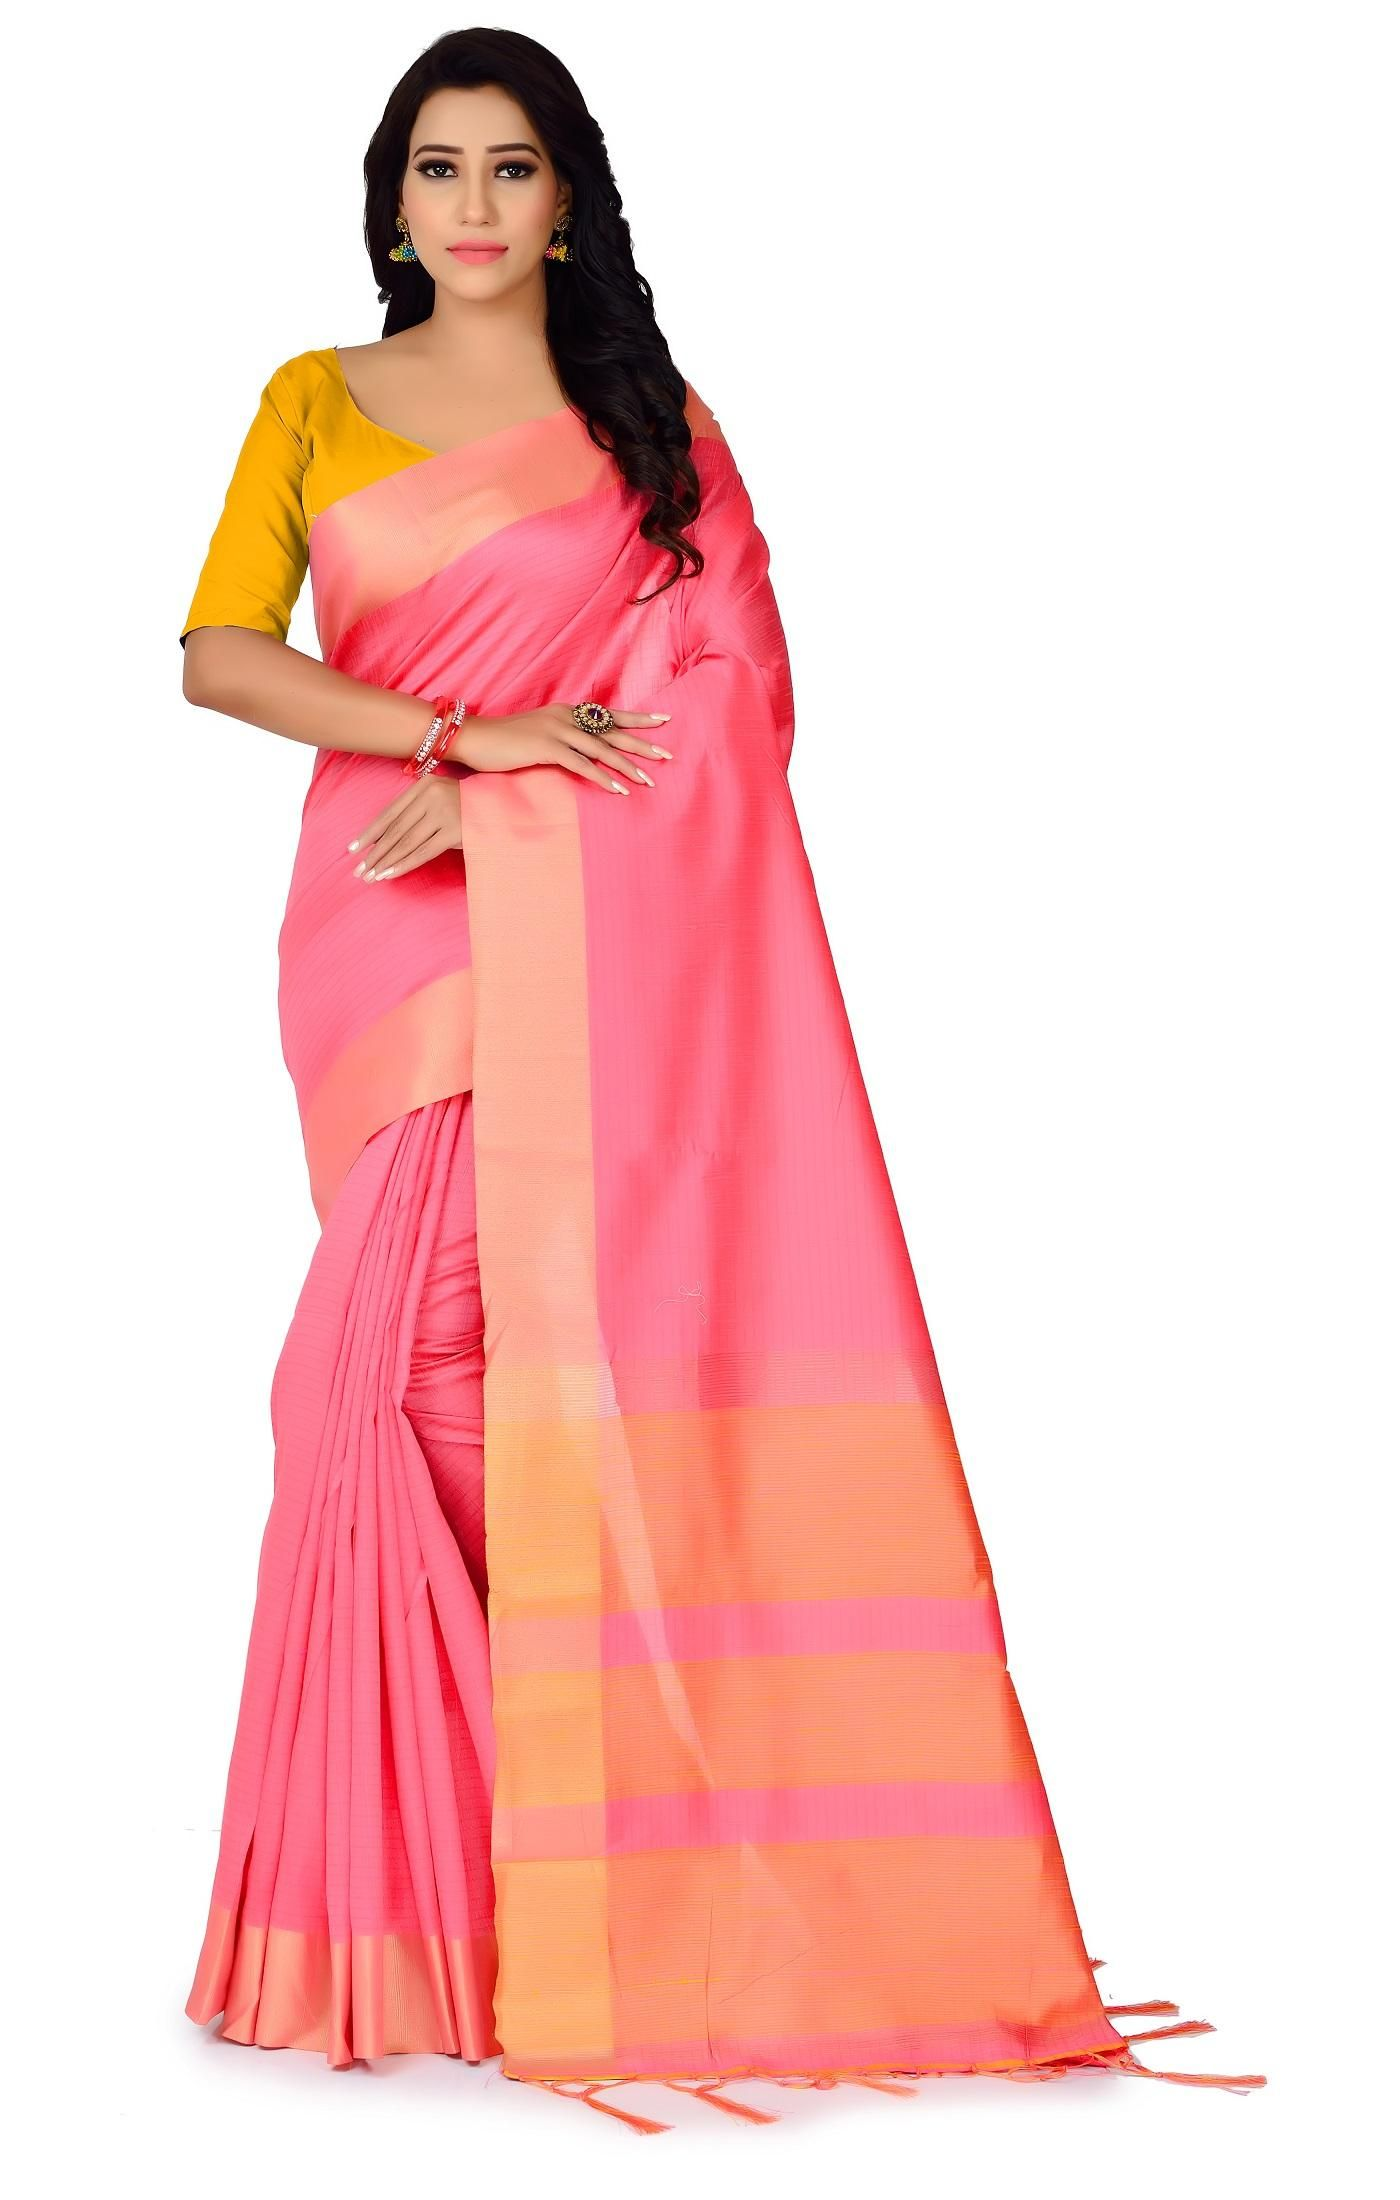 Women's Ethnic Polyester Cotton Solid With Border Regular Pink Saree